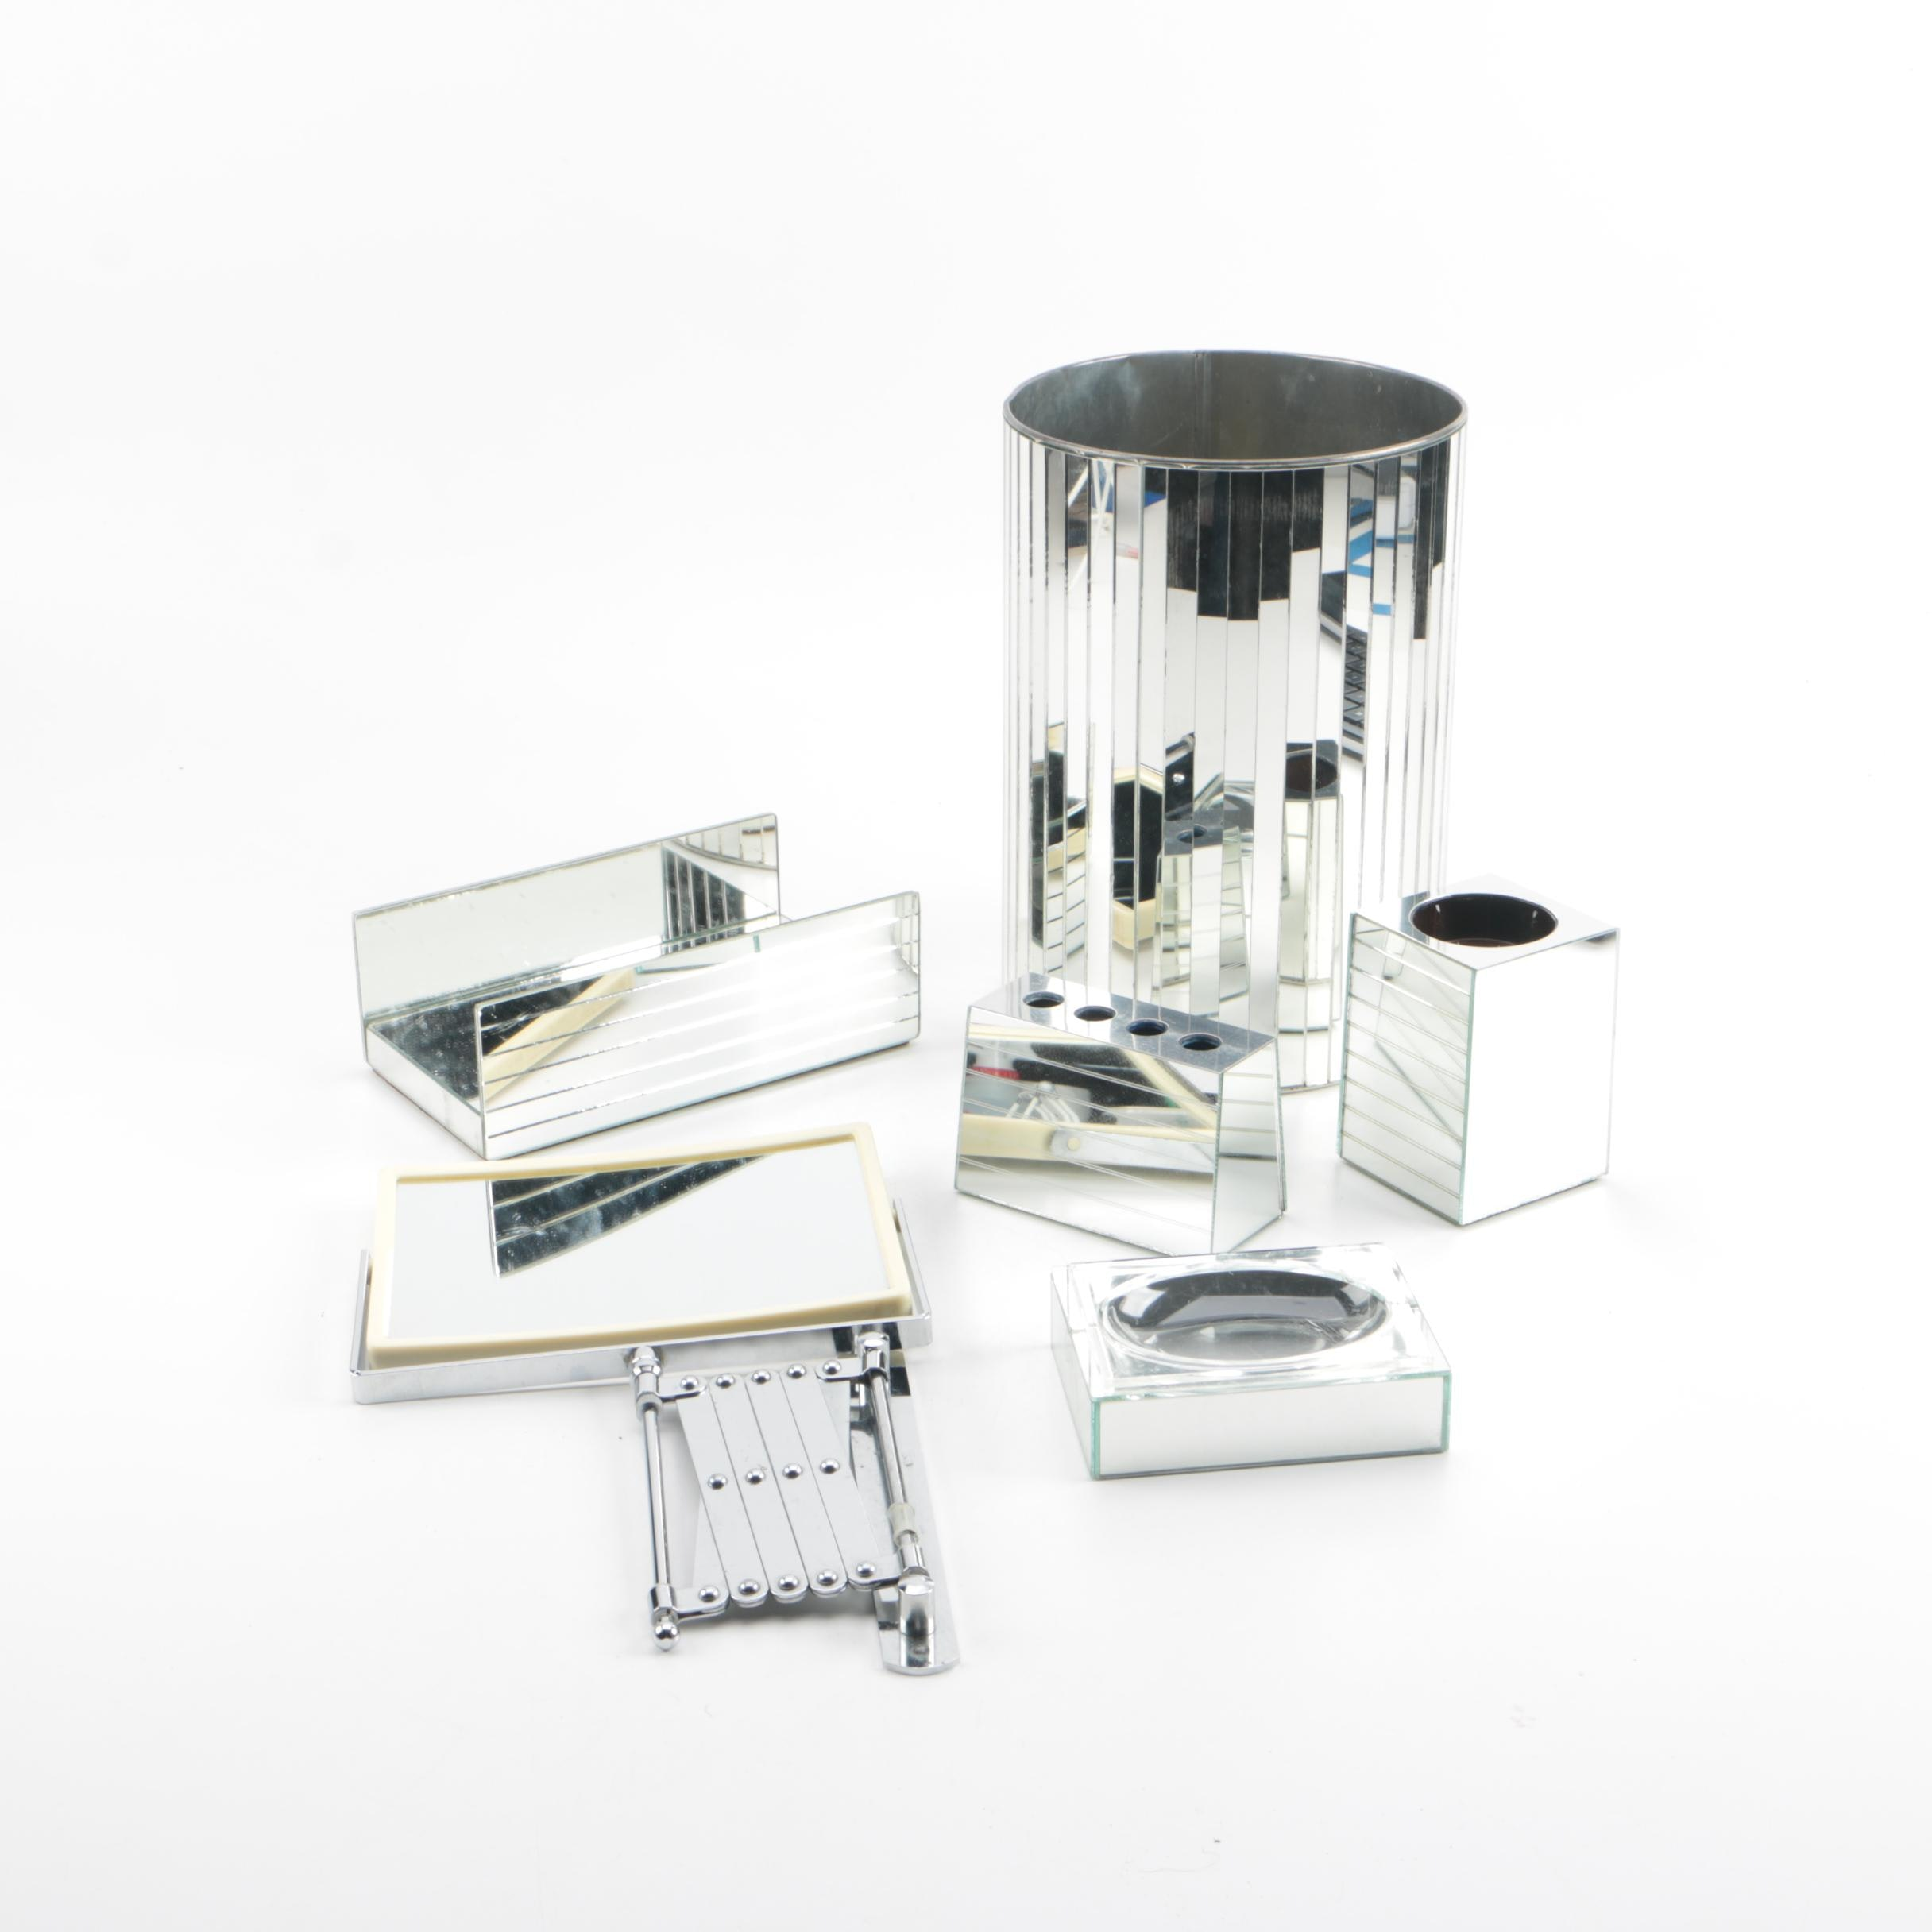 Mirrored Bathroom Accessories Including Imperial and Londonware